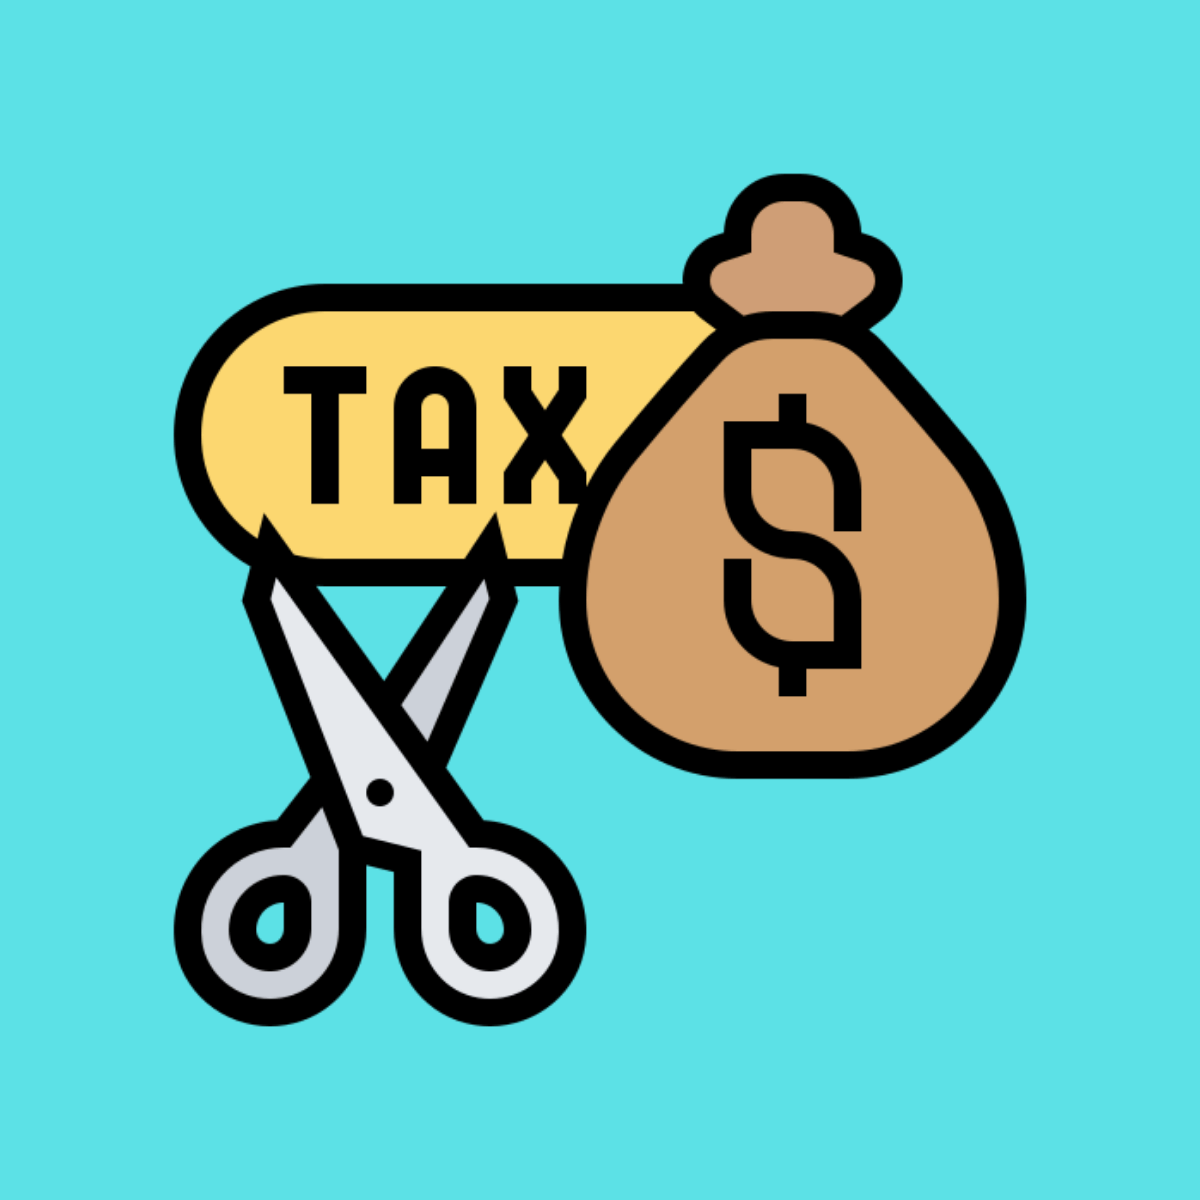 A Business Guide on Payroll Taxes & Deductions